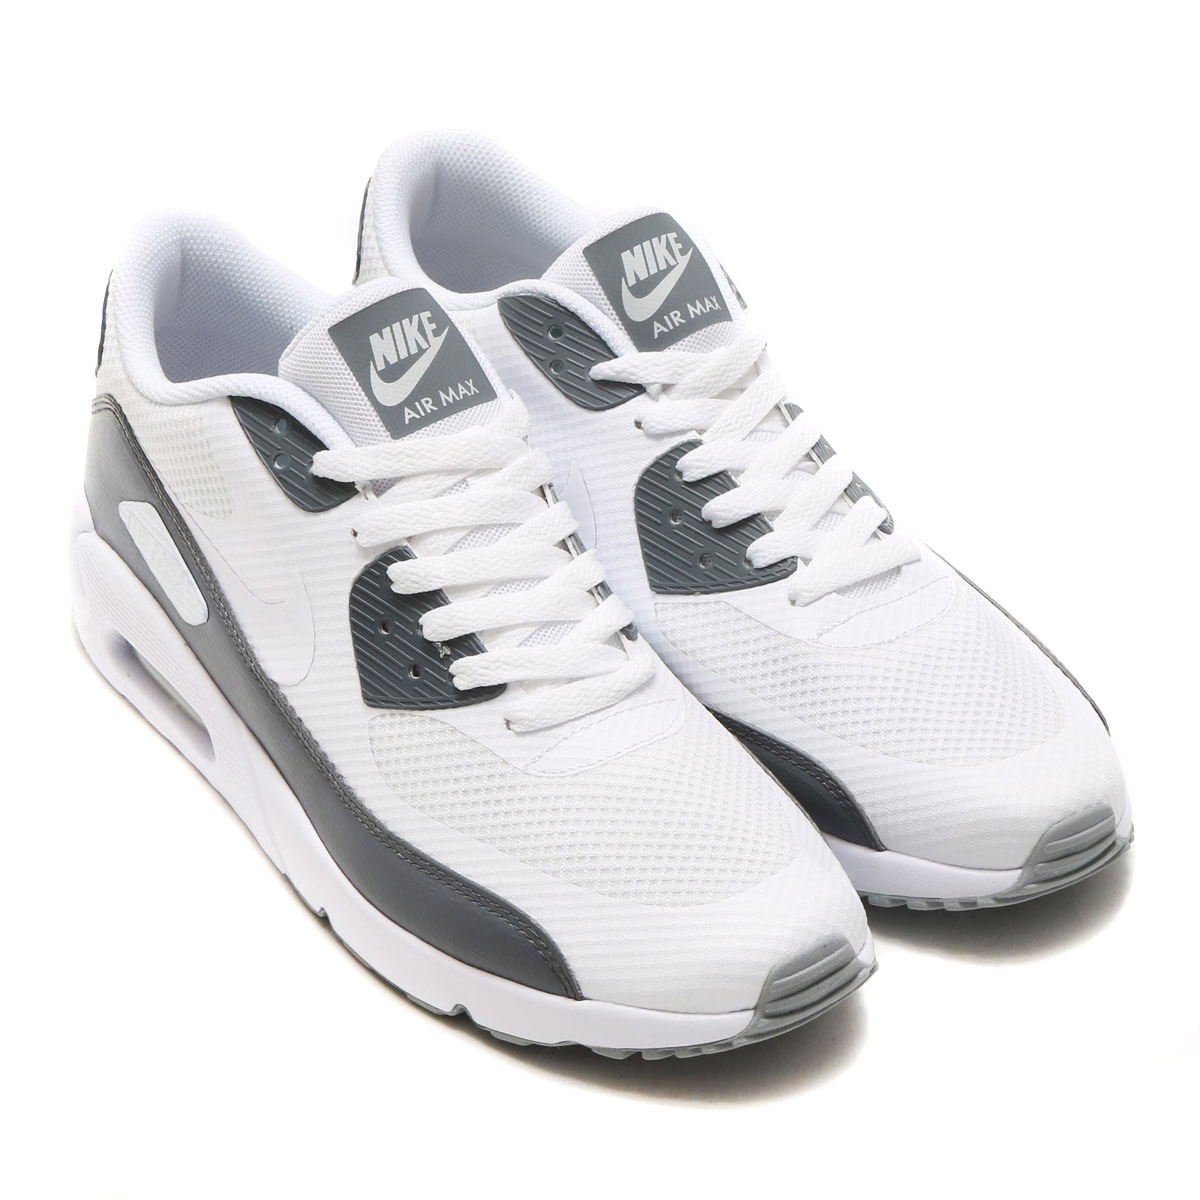 8633e86151 NIKE AIR MAX 90 ULTRA 2.0 ESSENTIAL (Kie Ney AMAX 90 ultra 2.0 essential)  ...